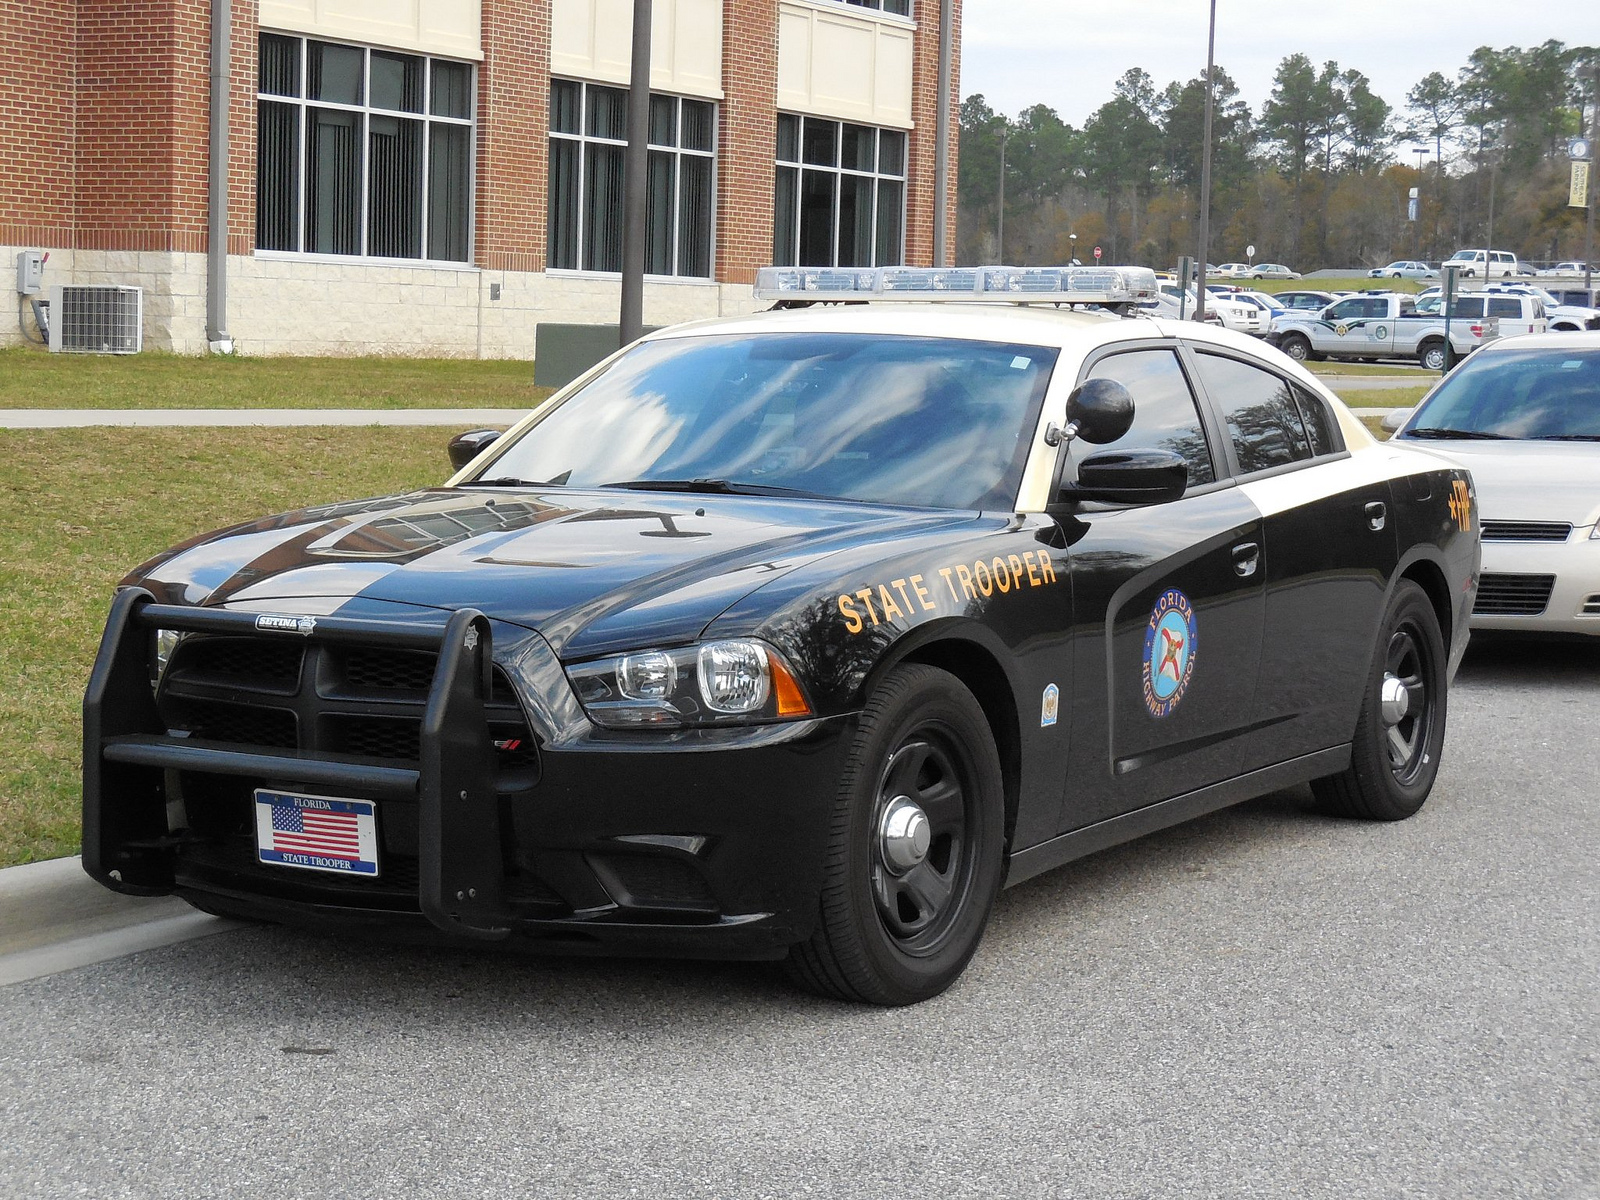 Florida Highway Patrol FHP Dodge Charger | Flickr - Photo Sharing!